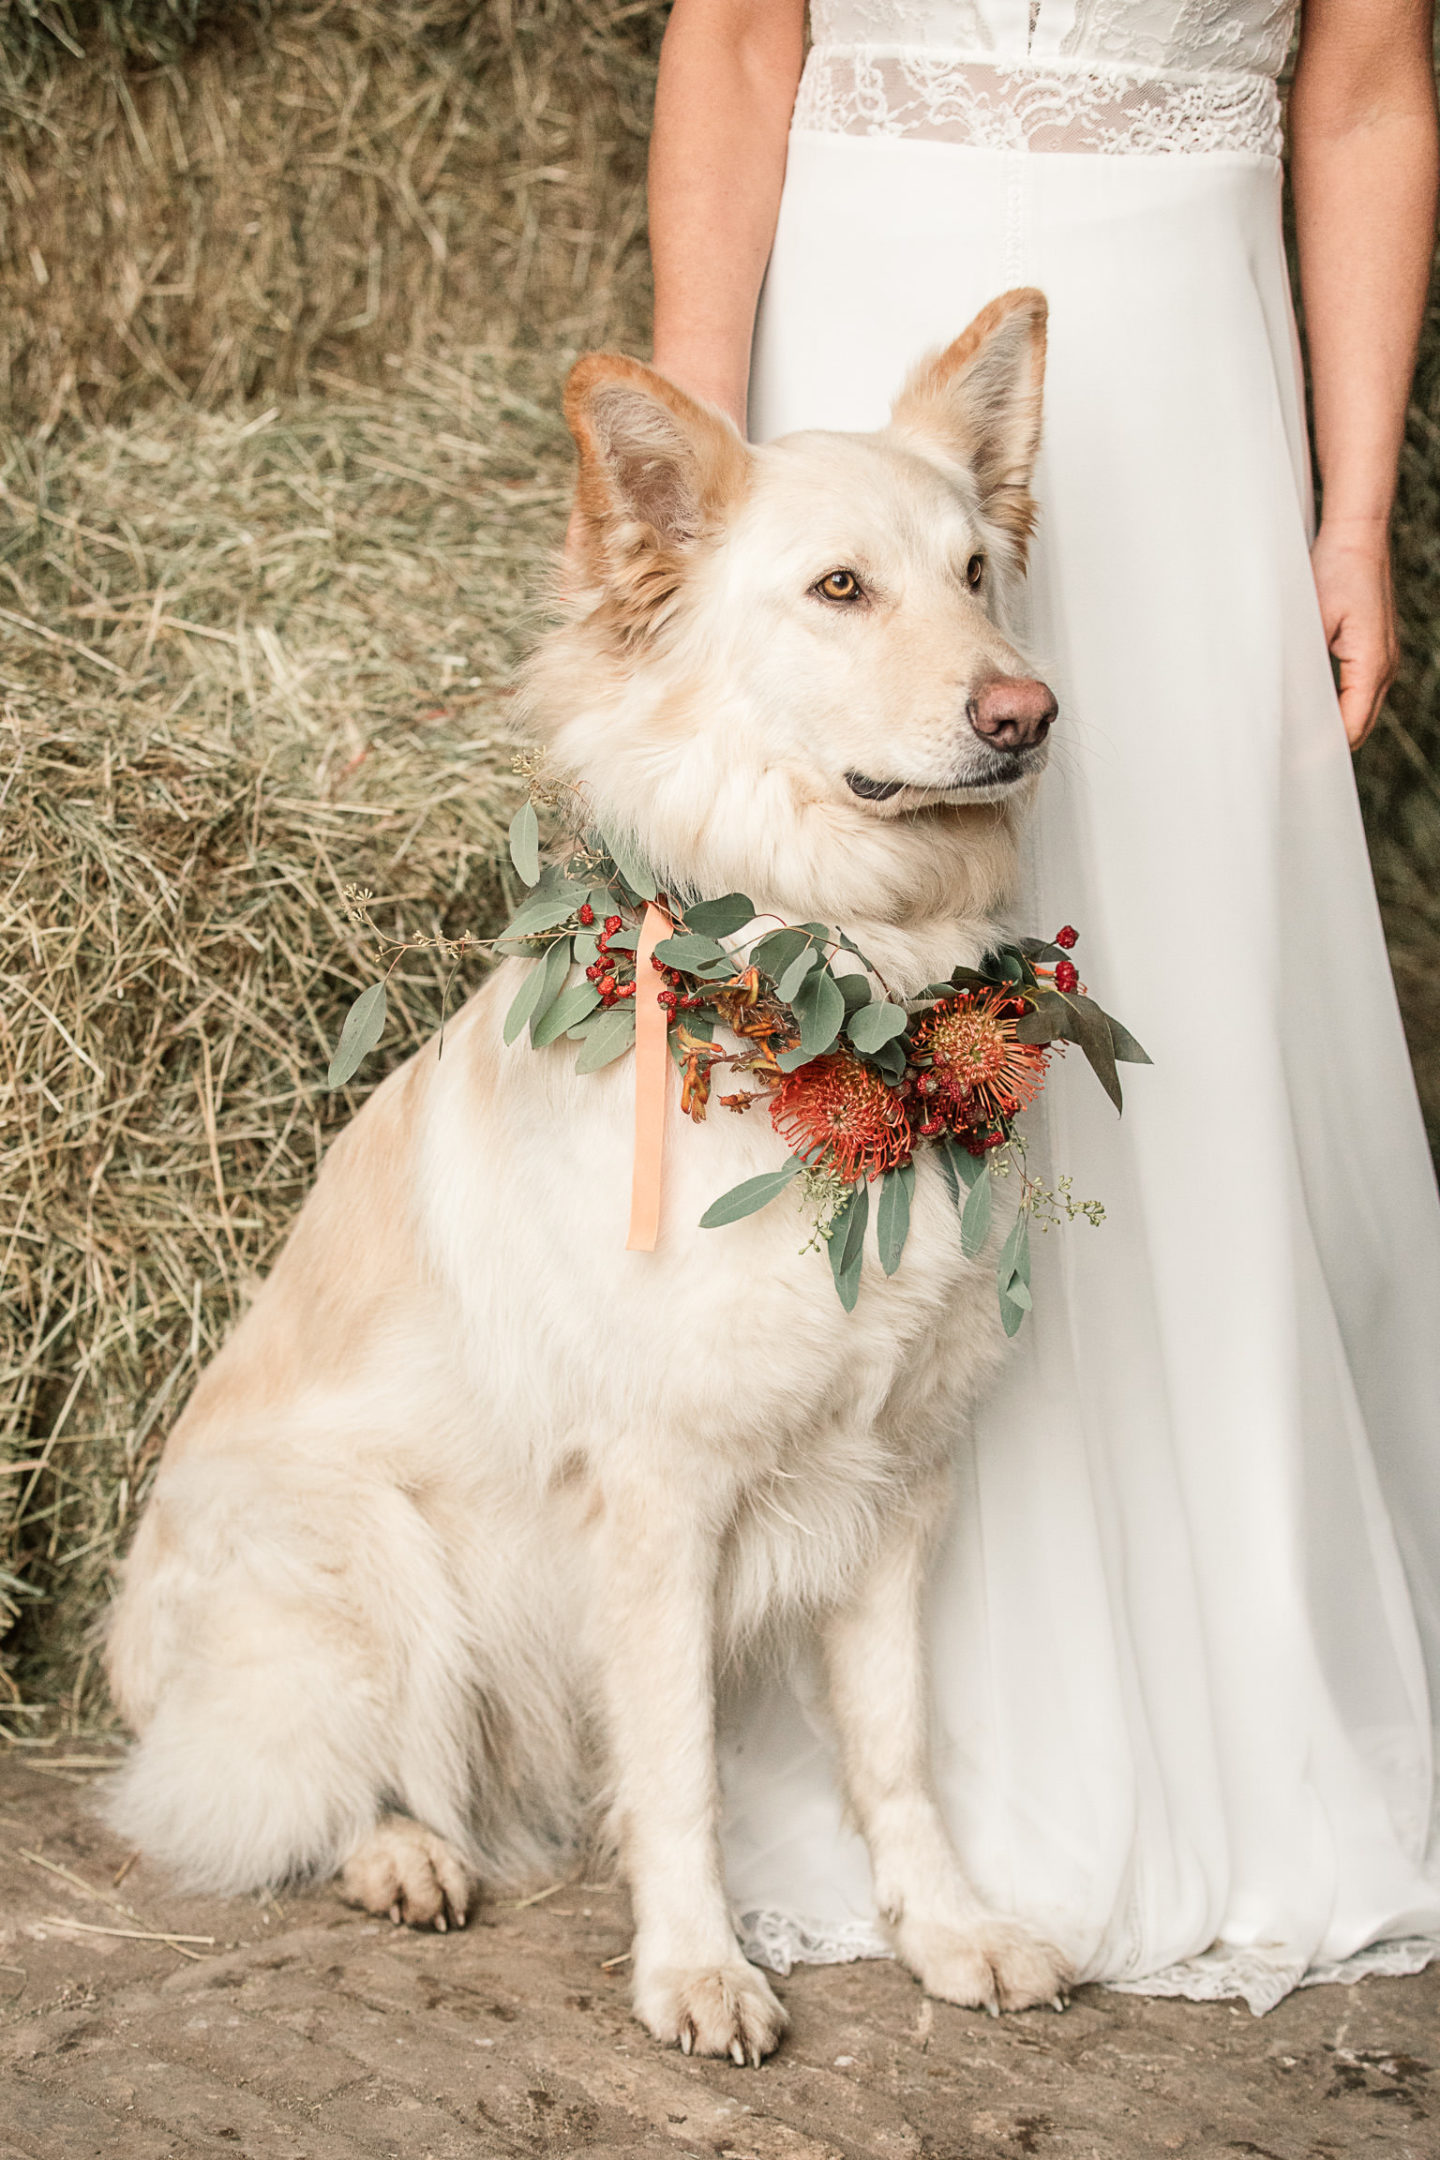 Animals At Weddings: Inspiration for National Dress Up Your Pet Day